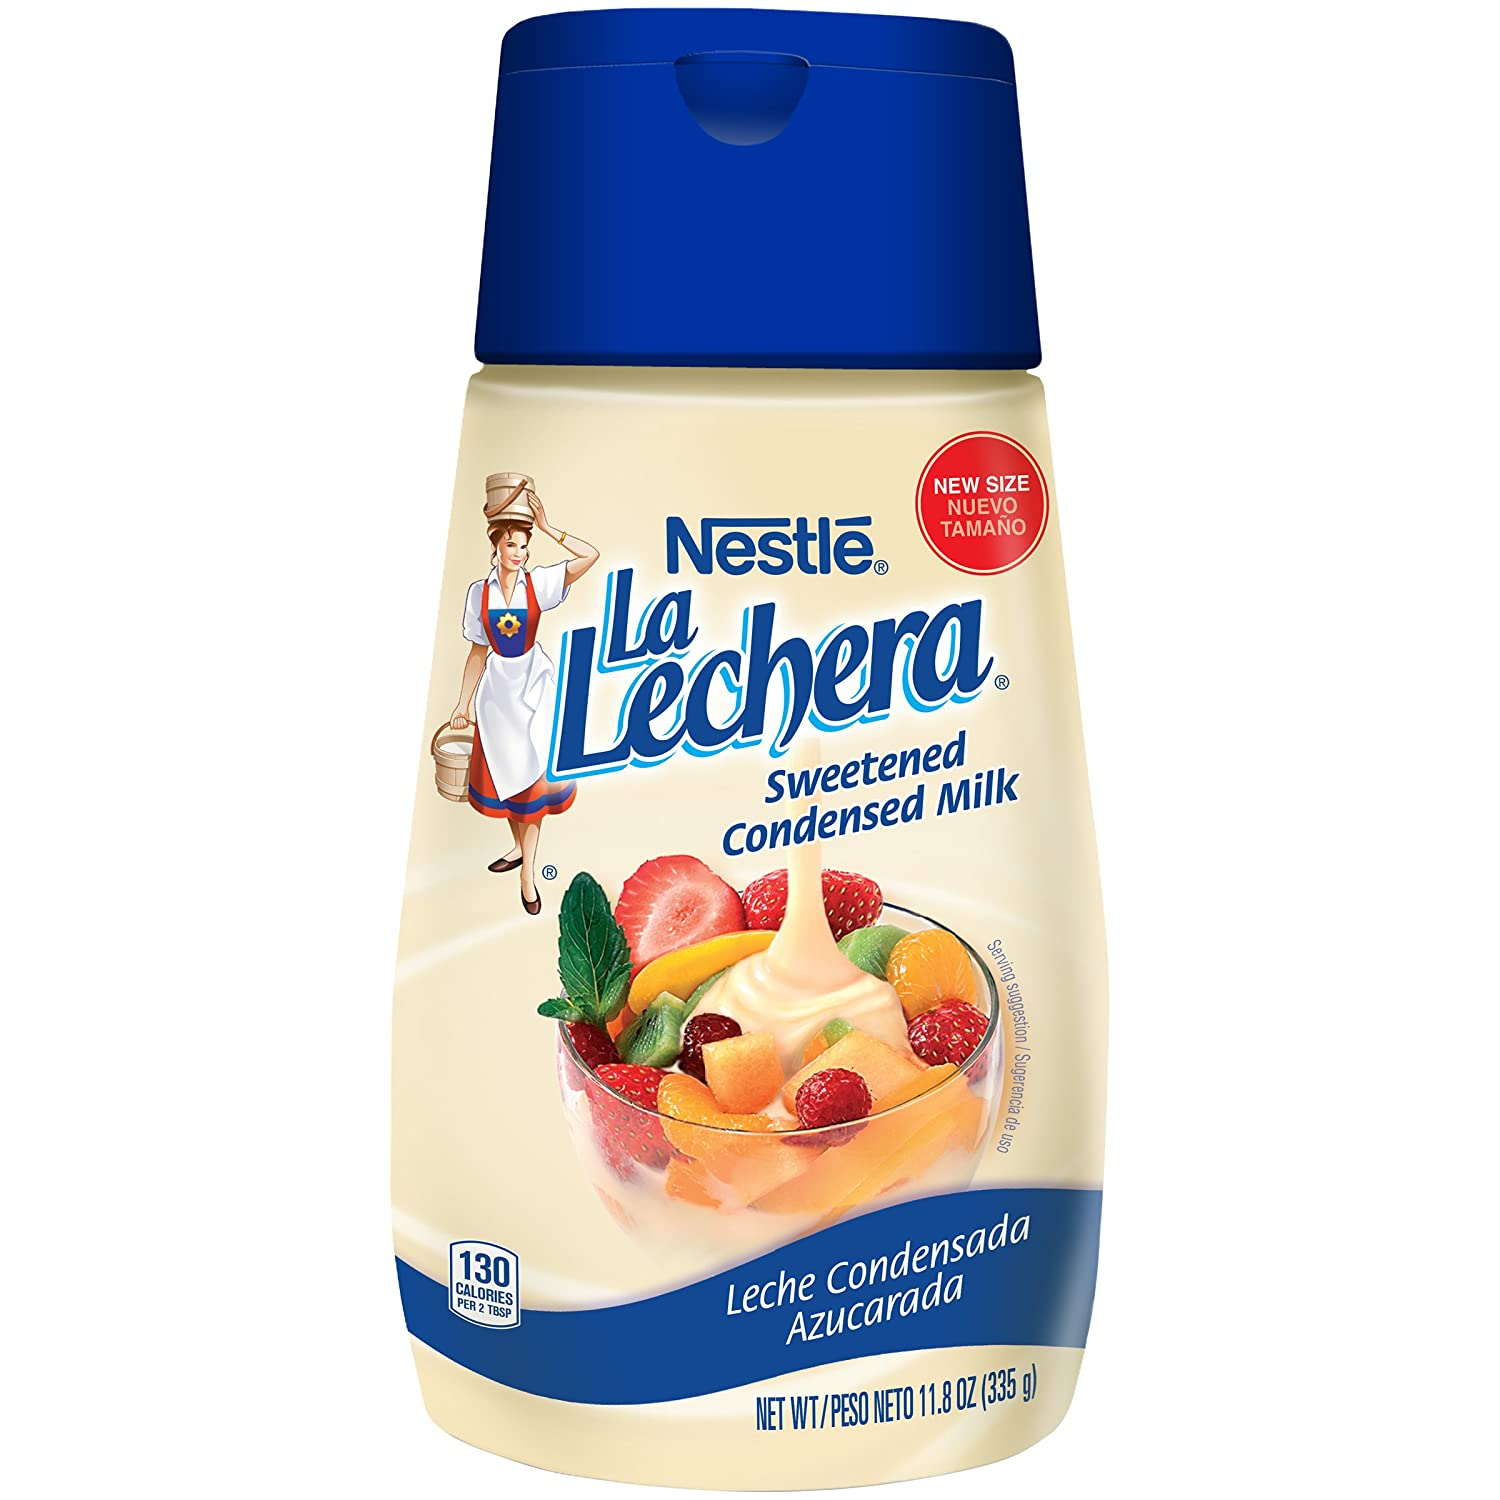 Nestle La Lechera Sweetened Condensed Milk, 11.8 oz (12 pack)